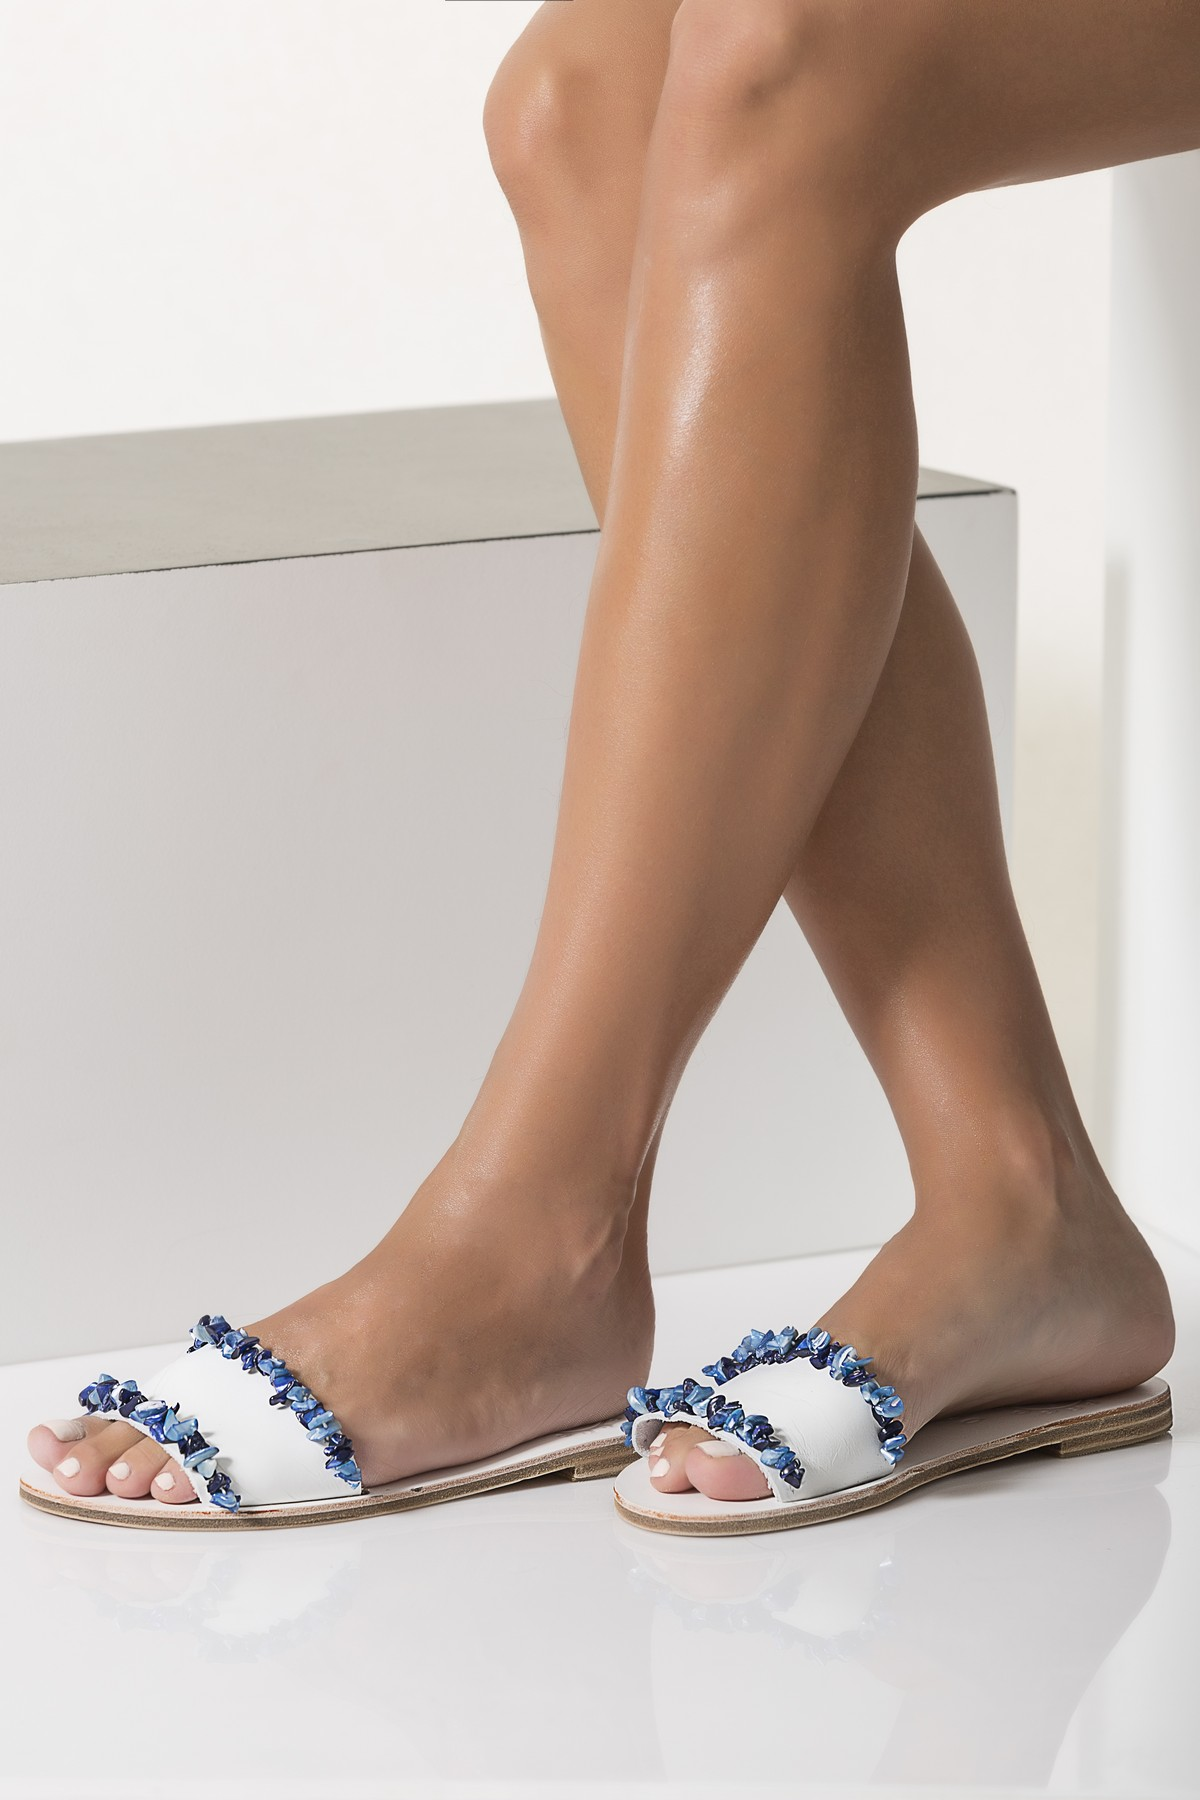 Blue Flat Sandals Wedding